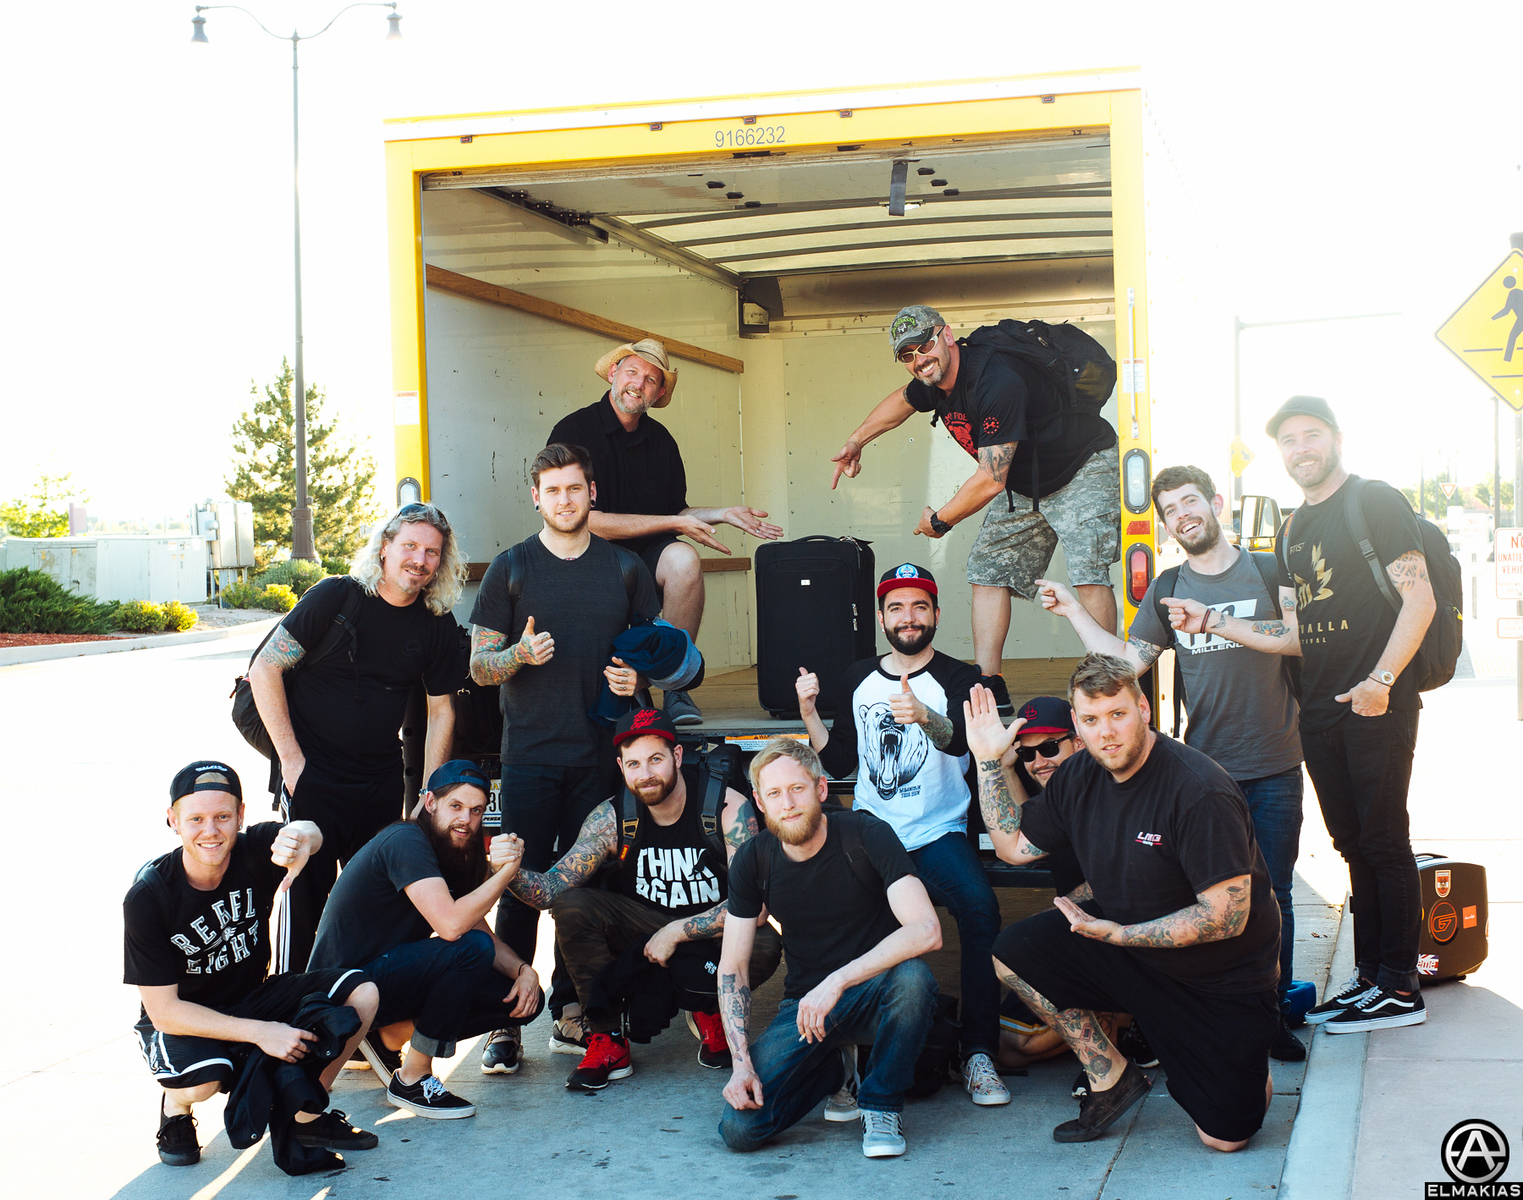 A Day To Remember and crew at Loudwire Festival in Grand Junction, CO